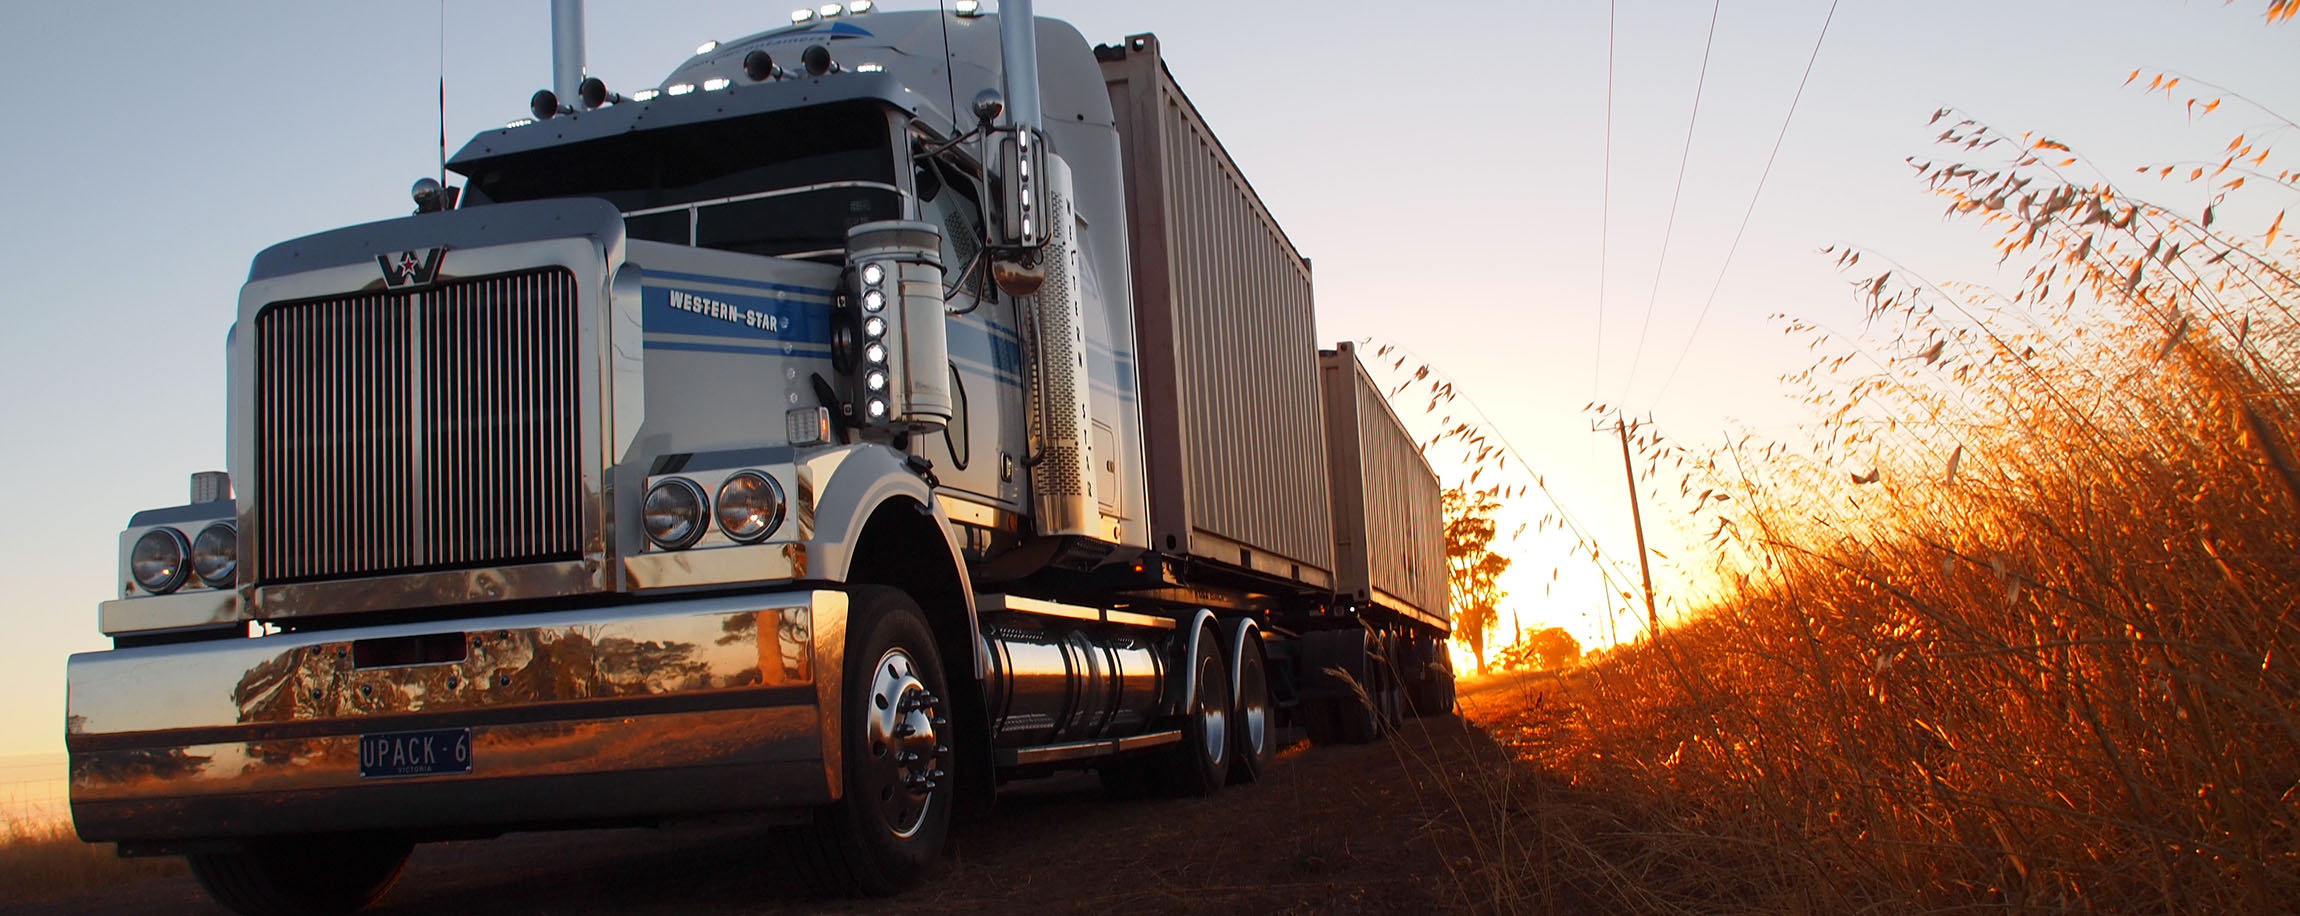 Contact for Interstate Removal and Commercial Transport Services